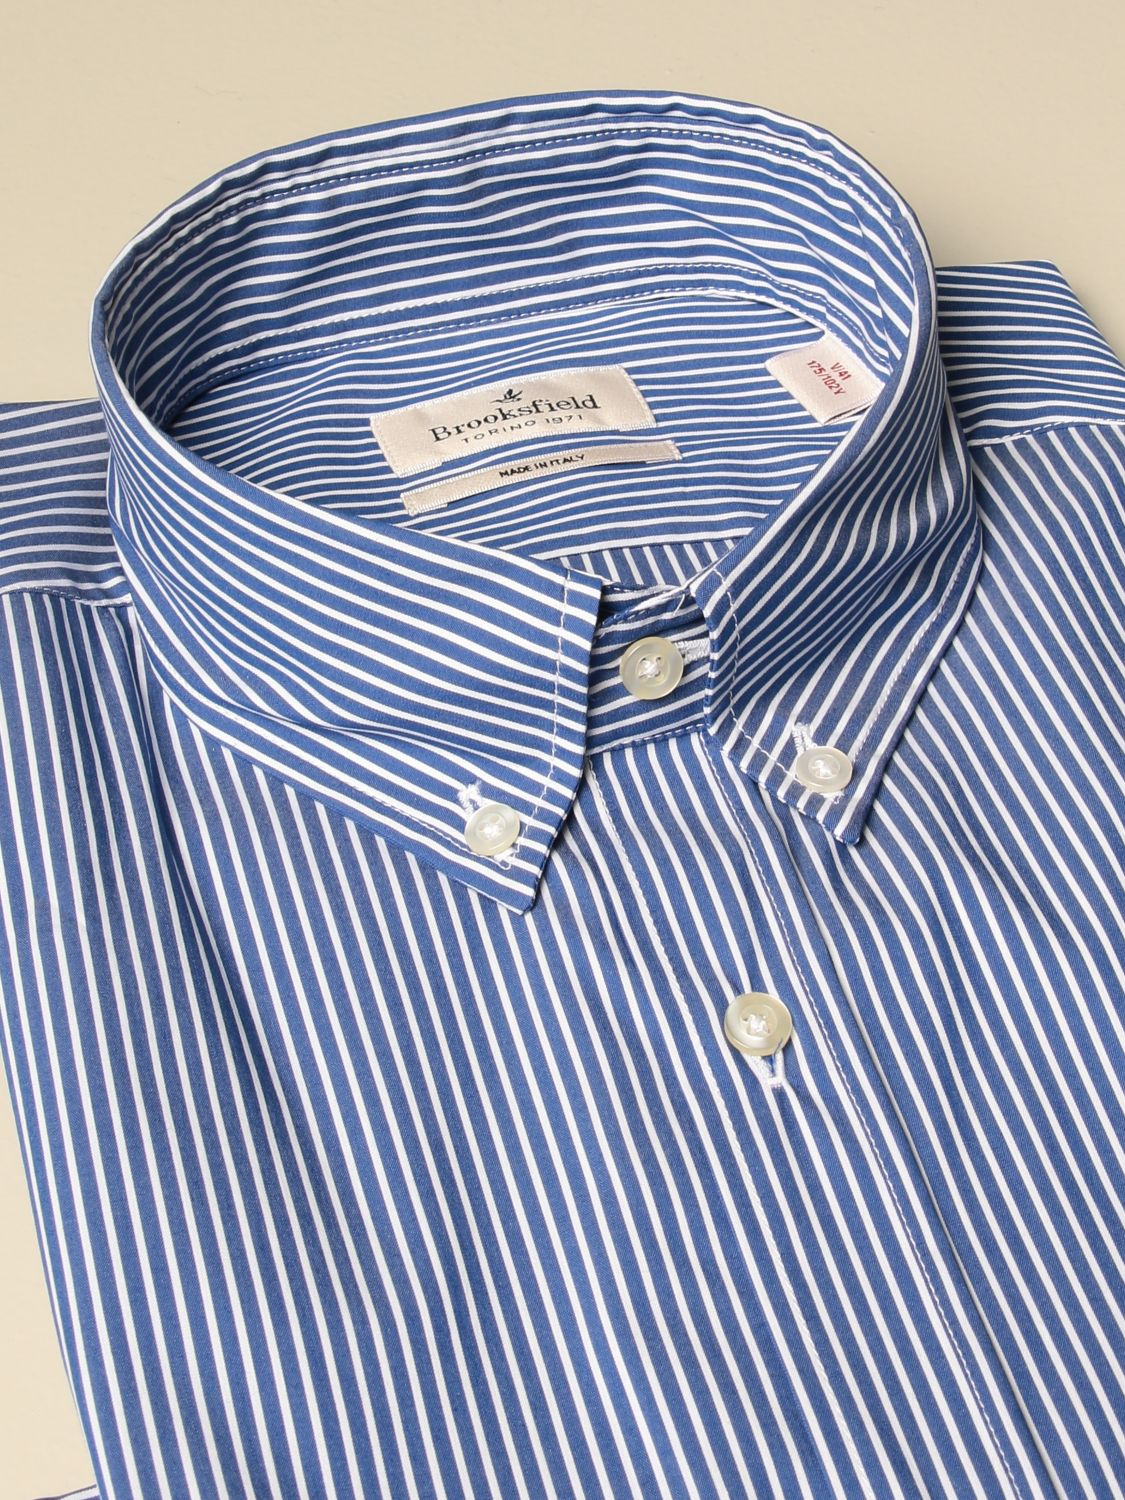 Shirt Brooksfield: Shirt men Brooksfield blue 2